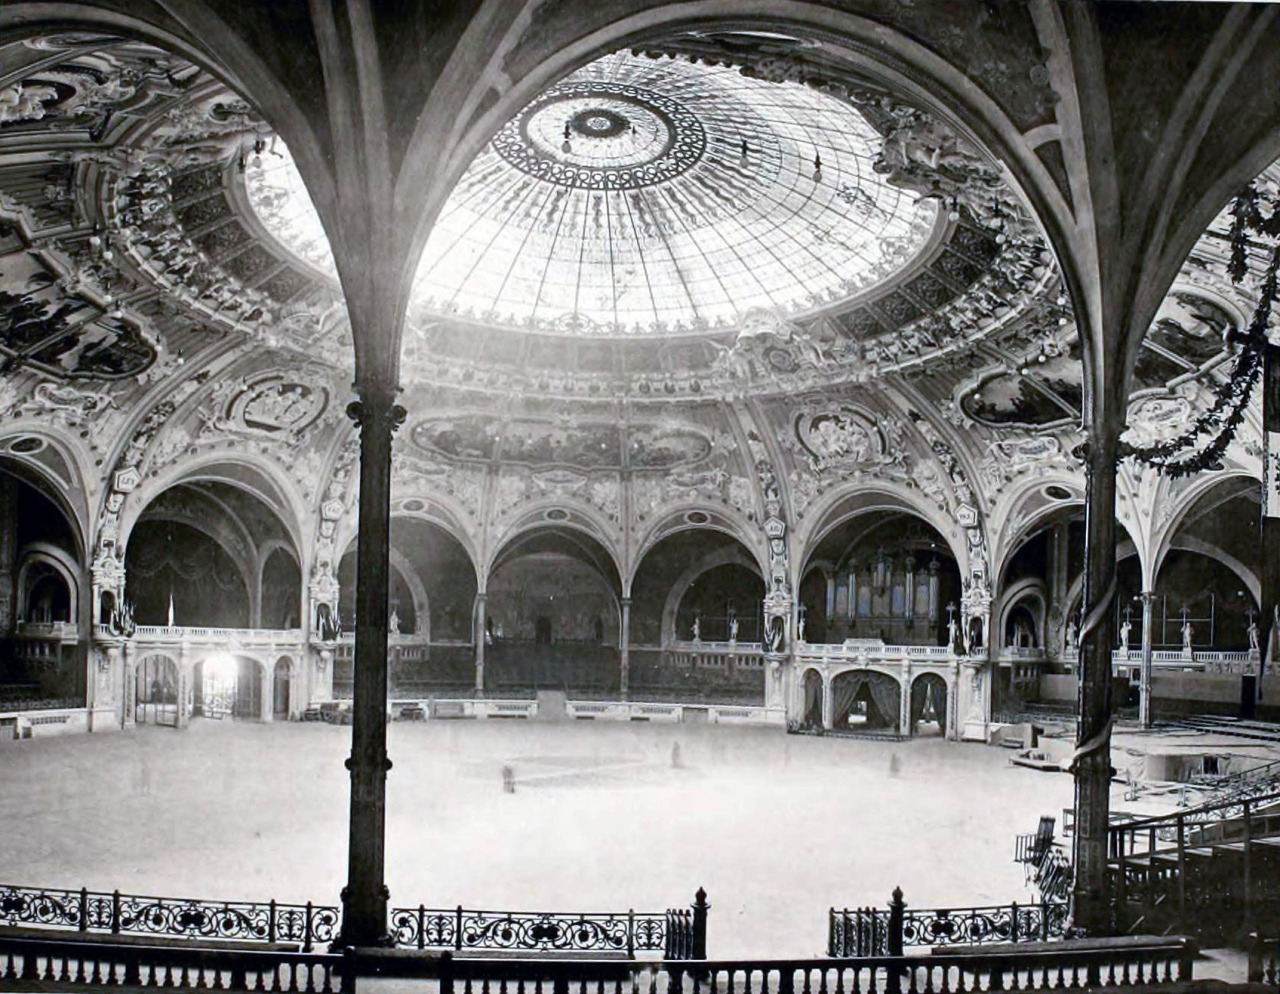 Inside the festival hall of the World's Fair in 1900, Paris